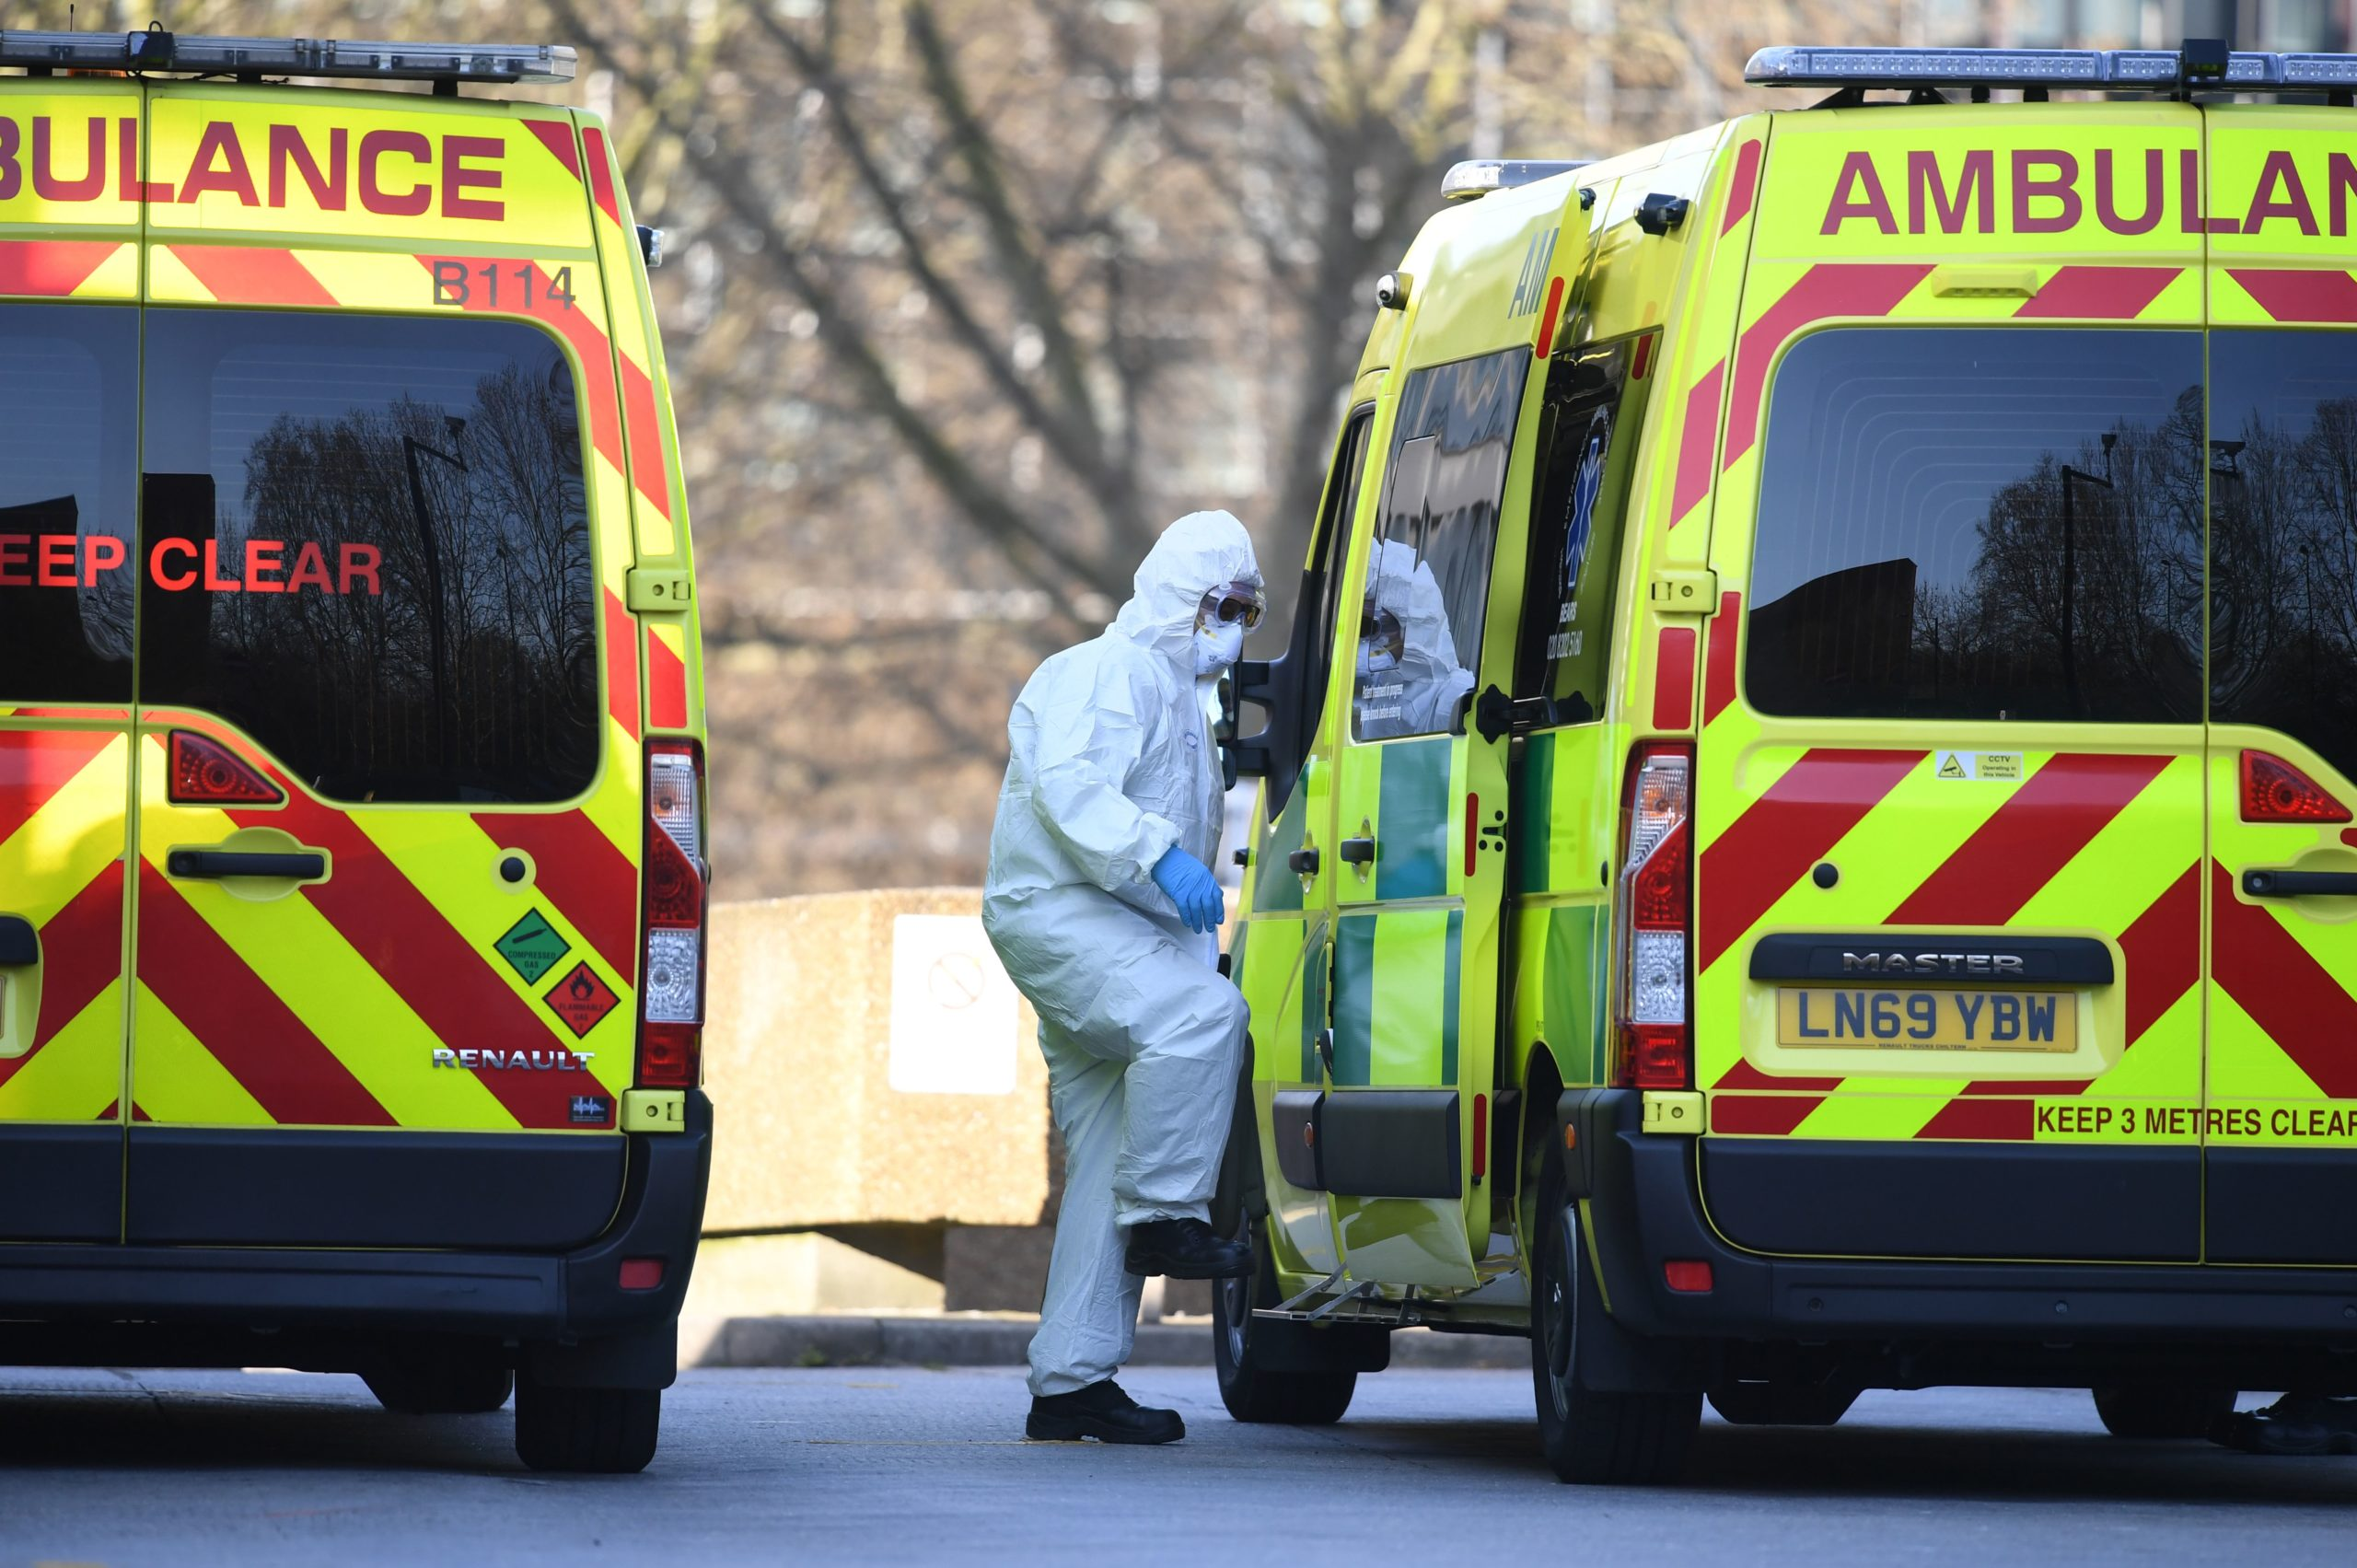 A member of the U.K. ambulance service wearing personal protective equipment is seen in March 2020. (Daniel Leal-Olivas/AFP via Getty Images)